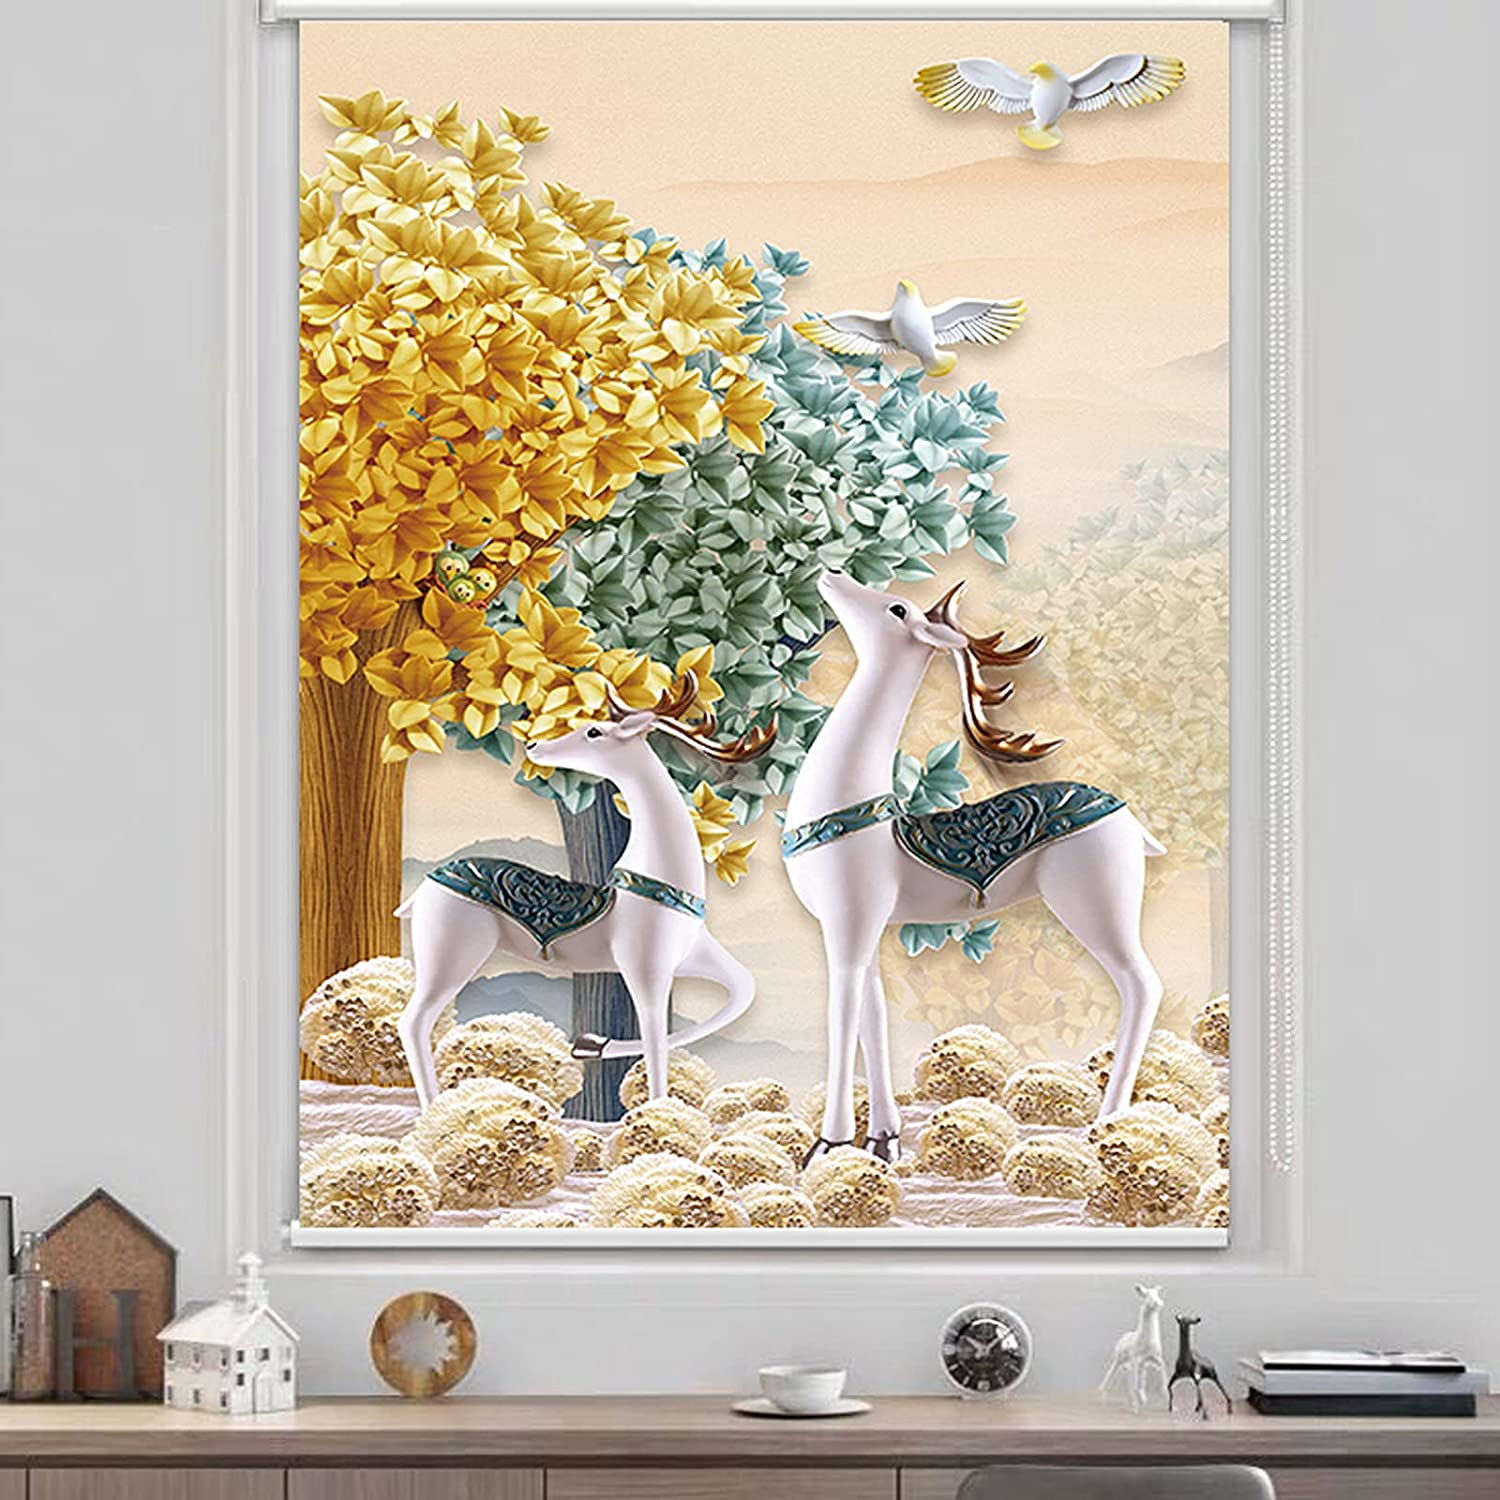 ZWLI Window Blinds Roller New color Shades for SALENEW very popular! Prot UV Windows Home Office